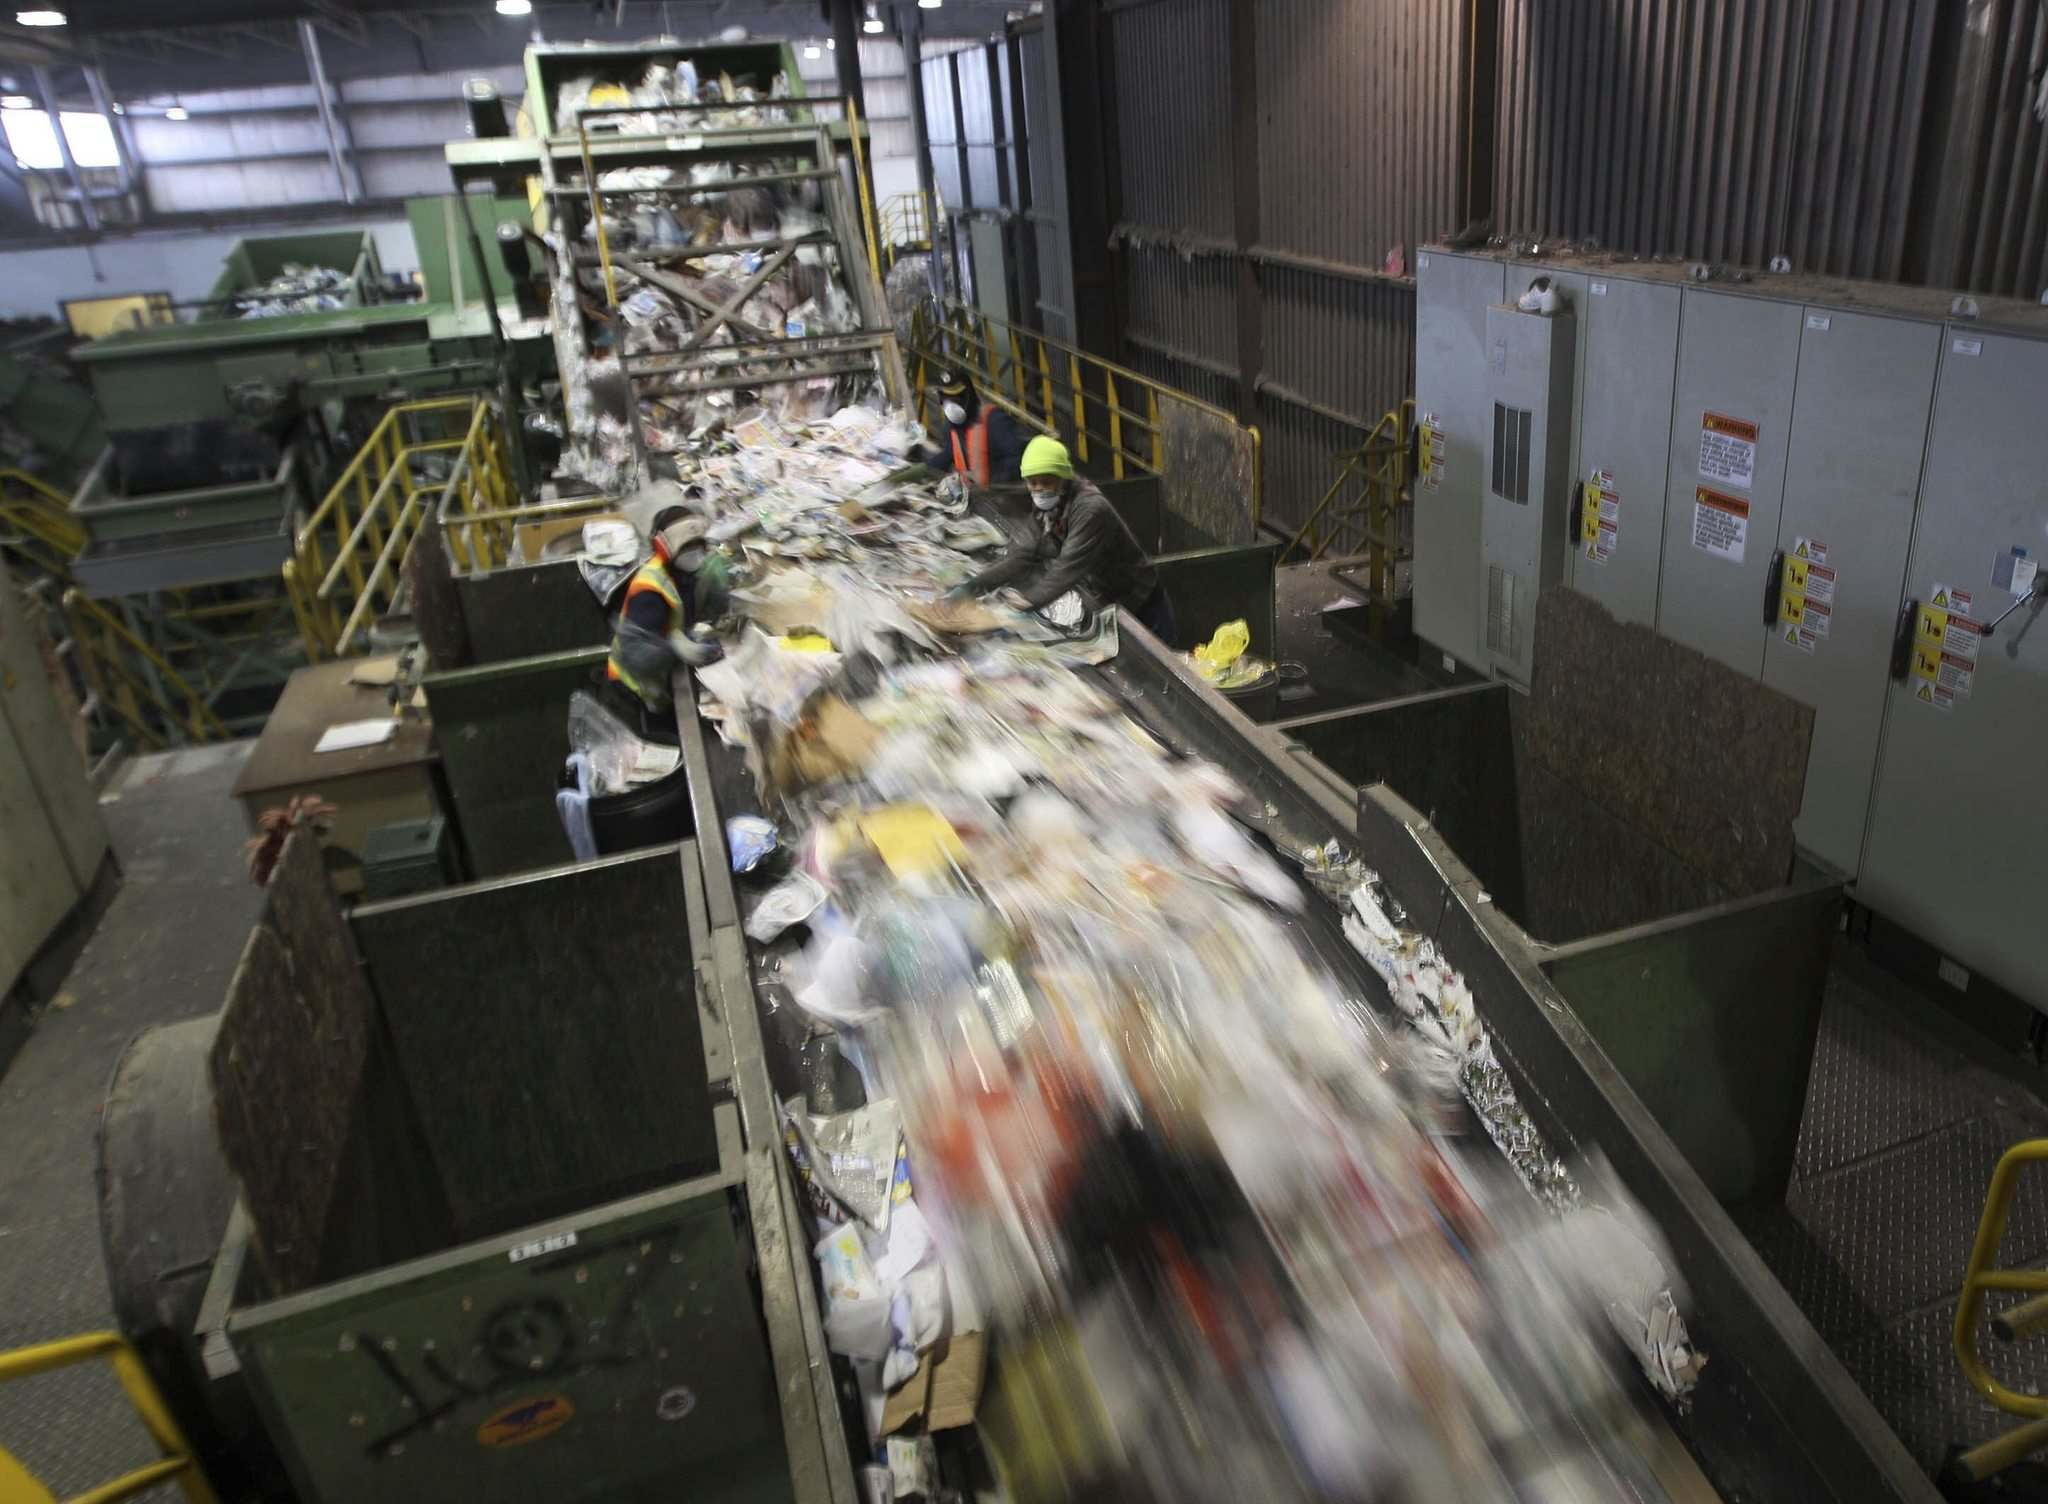 JOE BRYKSA / WINNIPEG FREE PRESS FILES</p><p>As much as 18 per cent of recyclable material collected from Winnipeg homes is contaminated.</p></p>